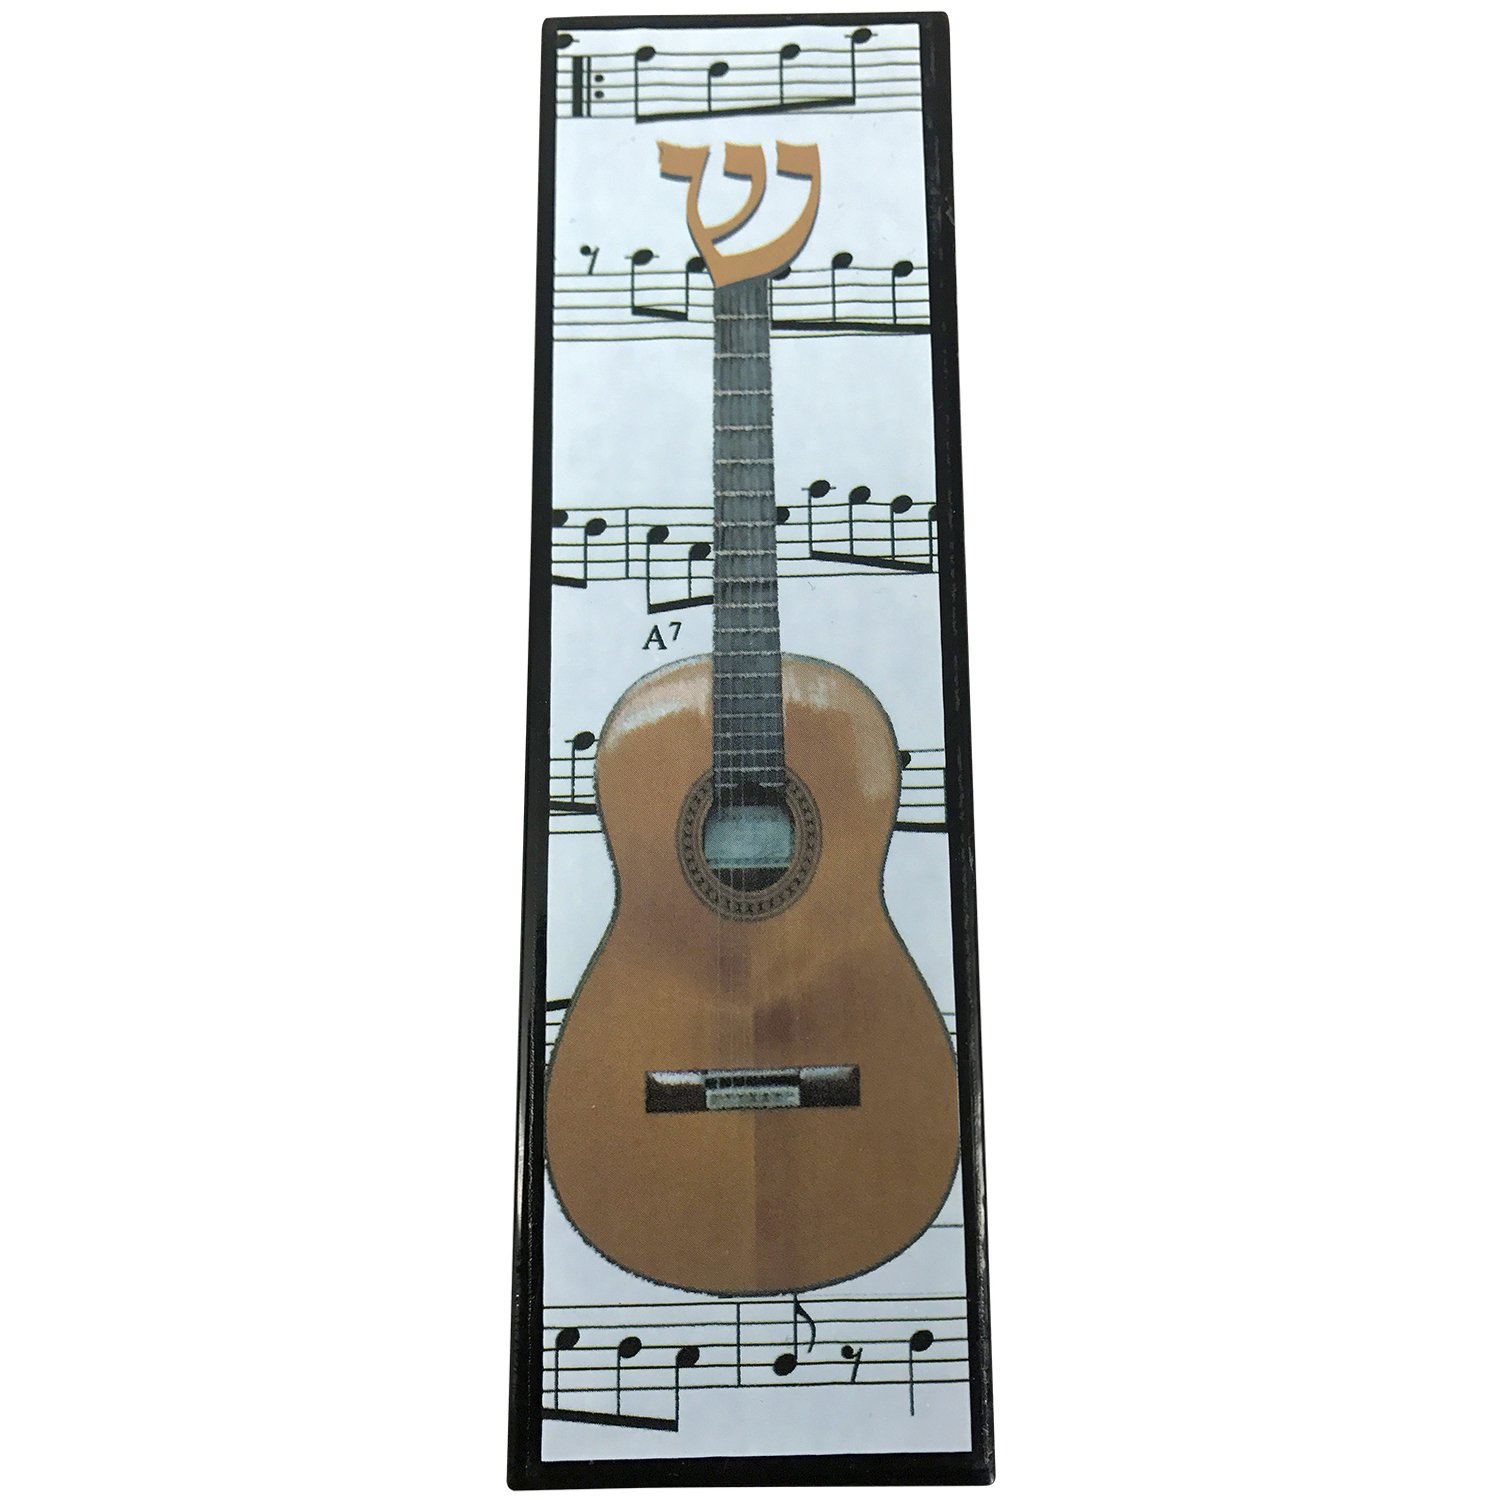 EASY MOUNT Glass Acoustic Guitar Mezuzah, GIFT BOX and Non-Kosher Scroll INCLUDED. Great Mezuzah for Bar or Bat Mitzvah Gift, Music Lover, Dorm Room